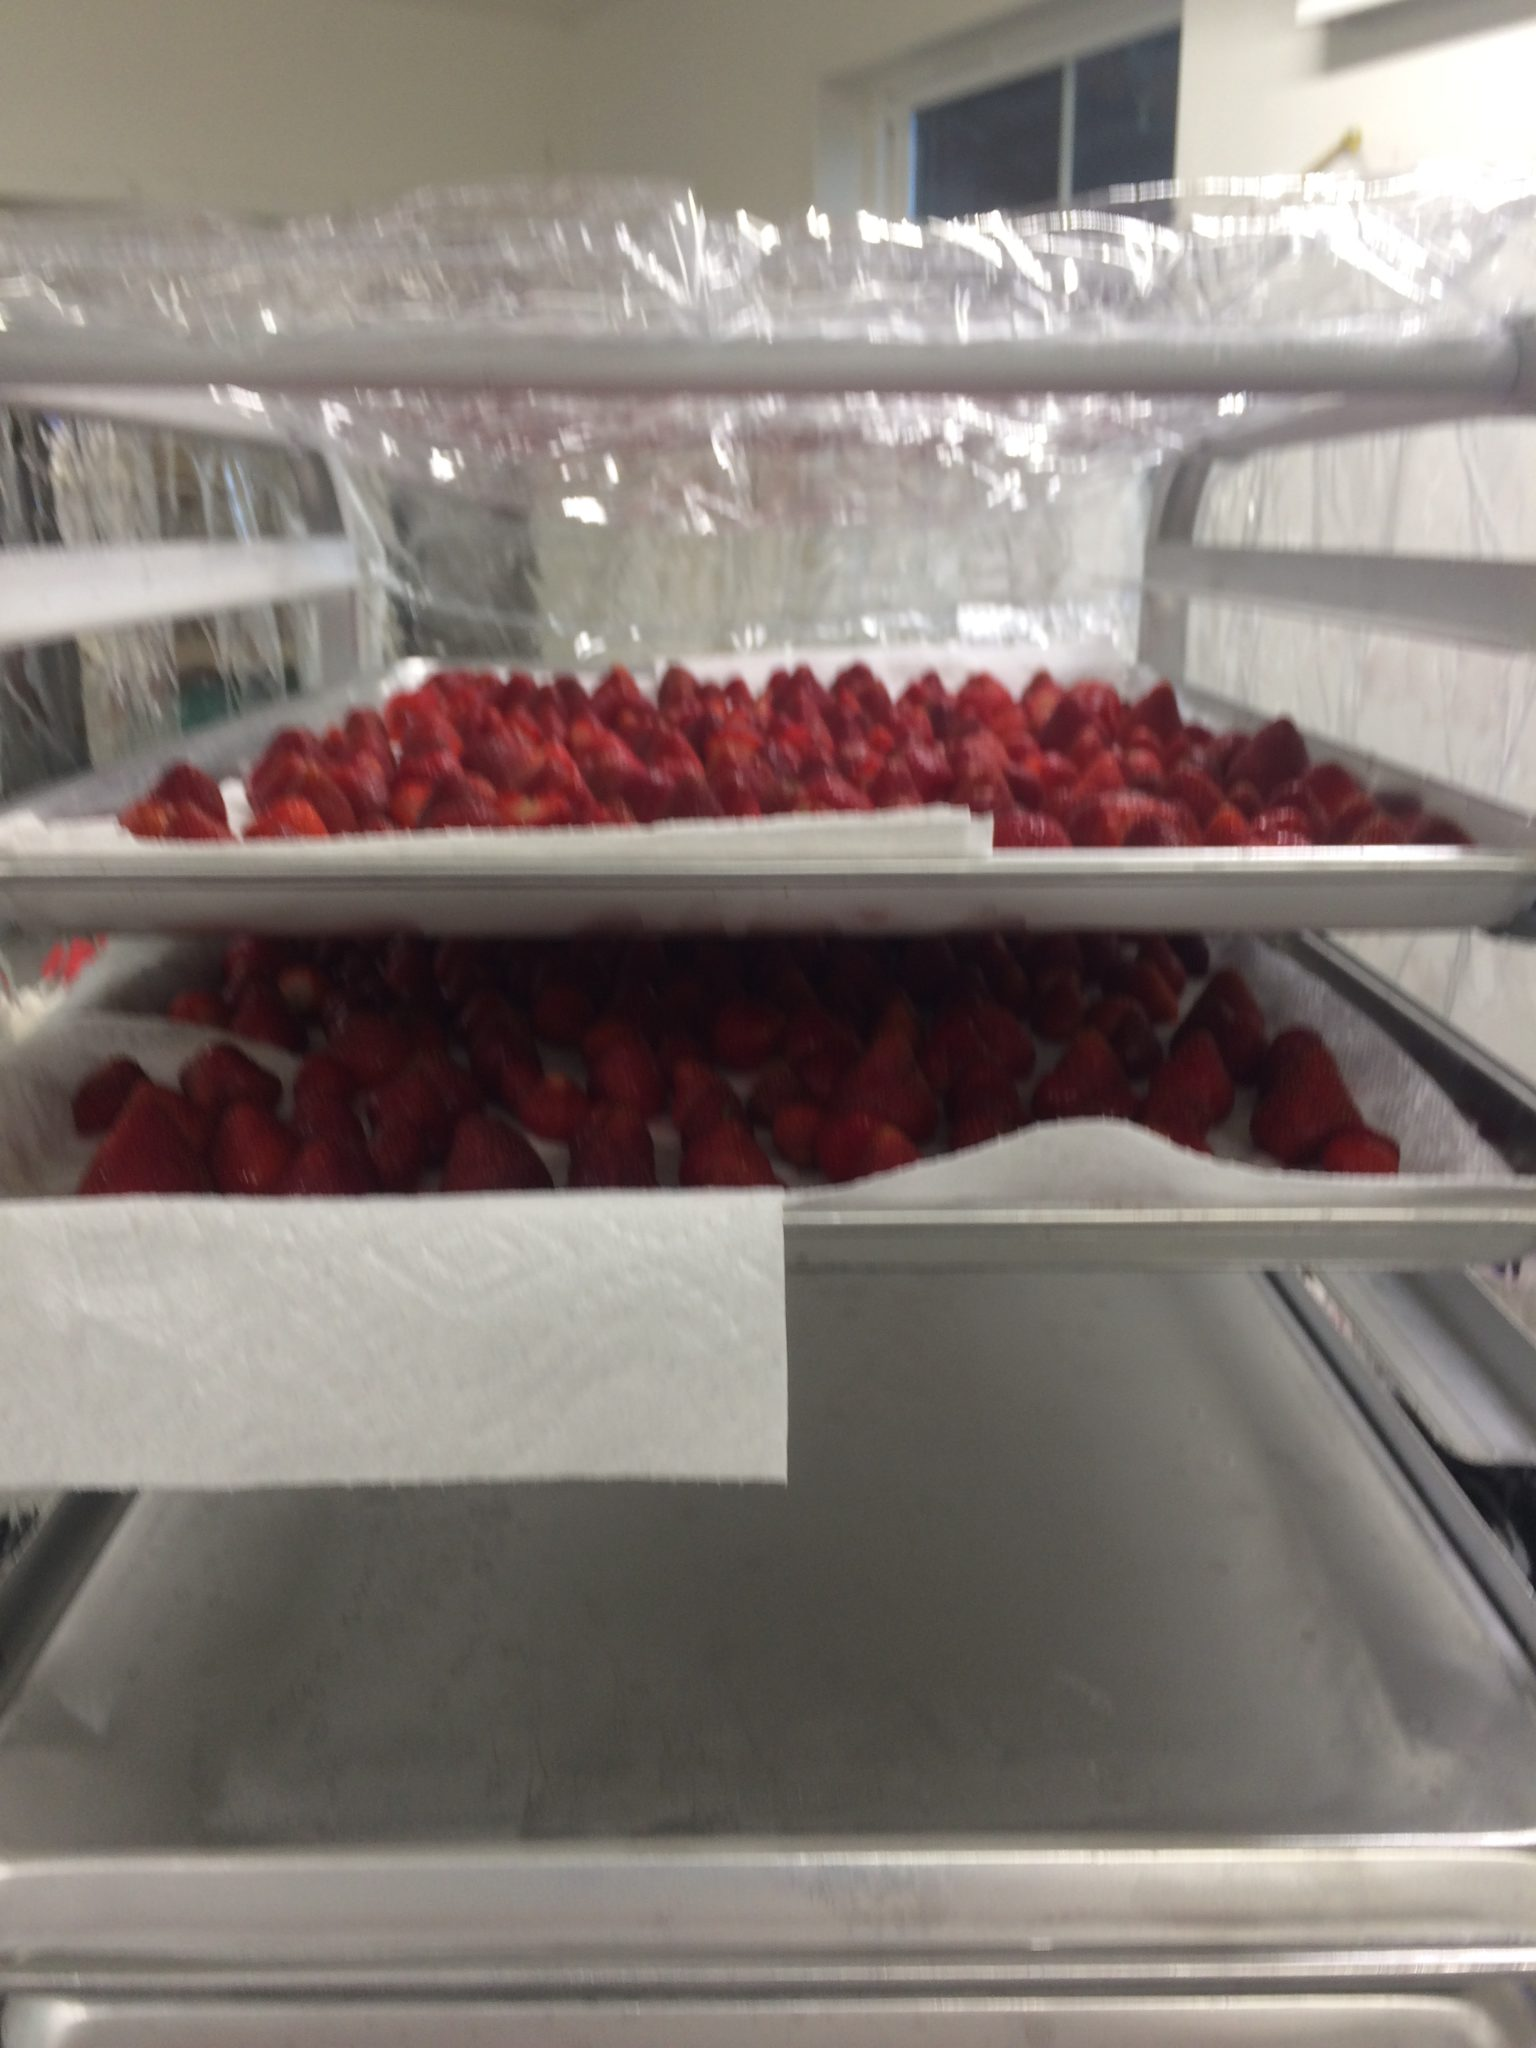 strawberries on trays